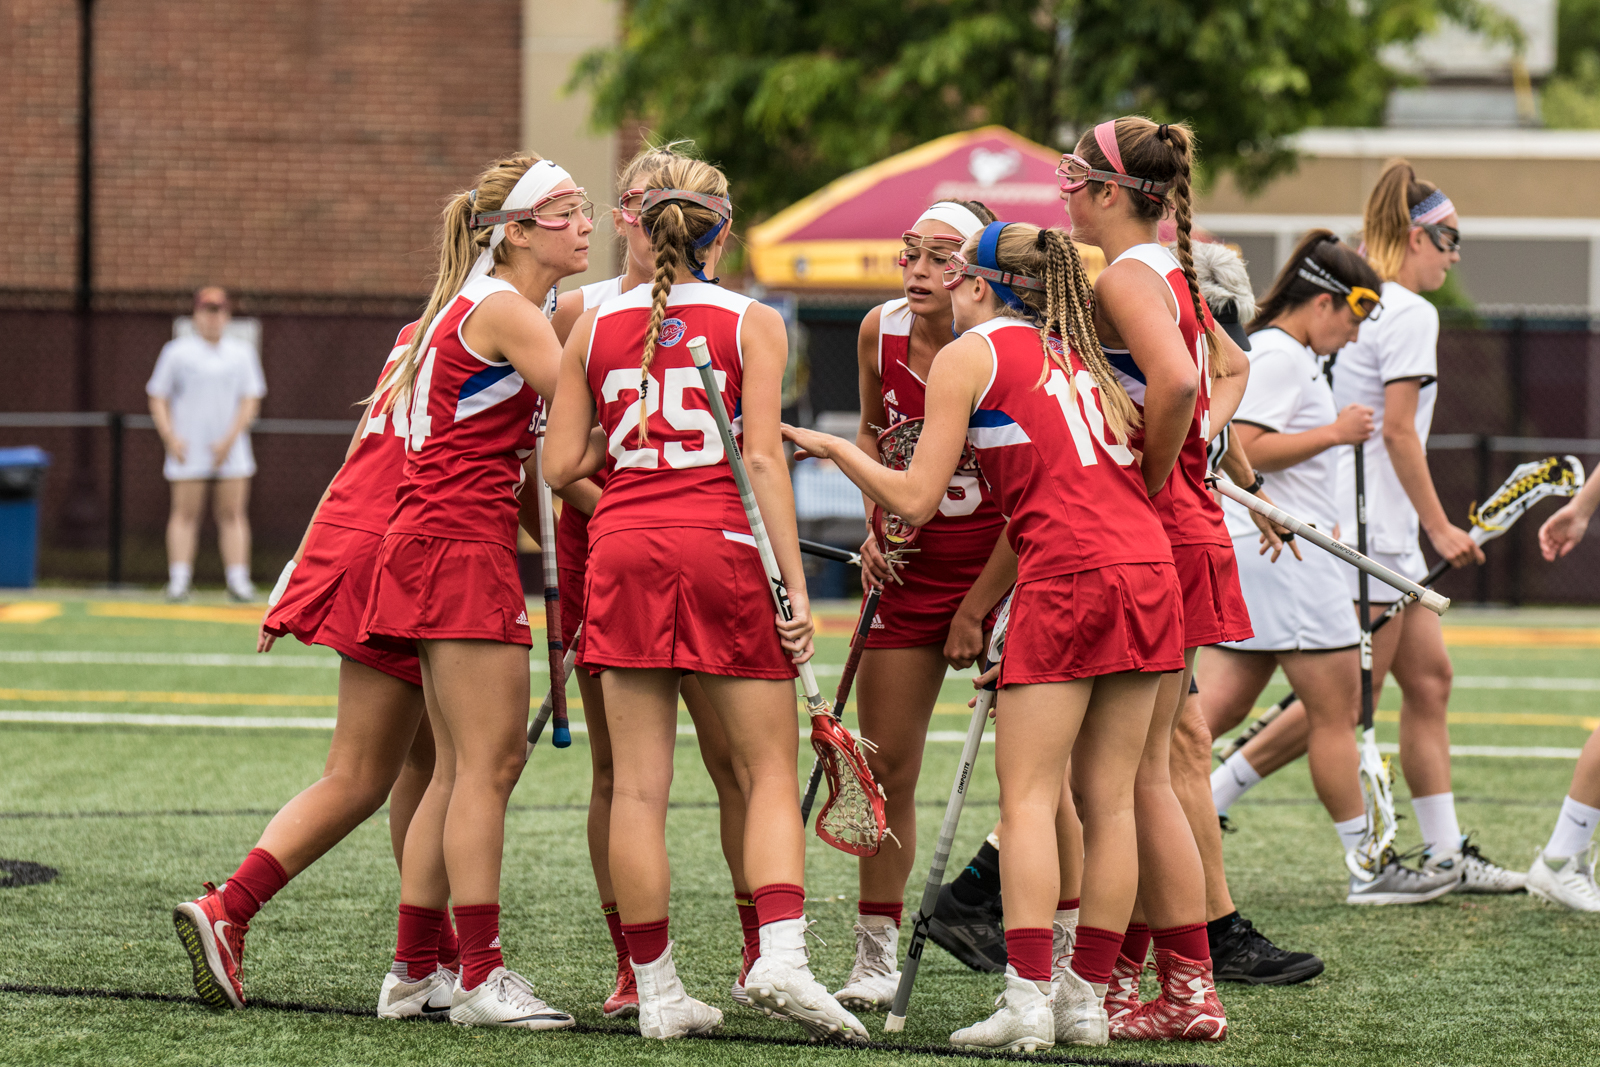 Moccasins Fall in NCAA Championship Game